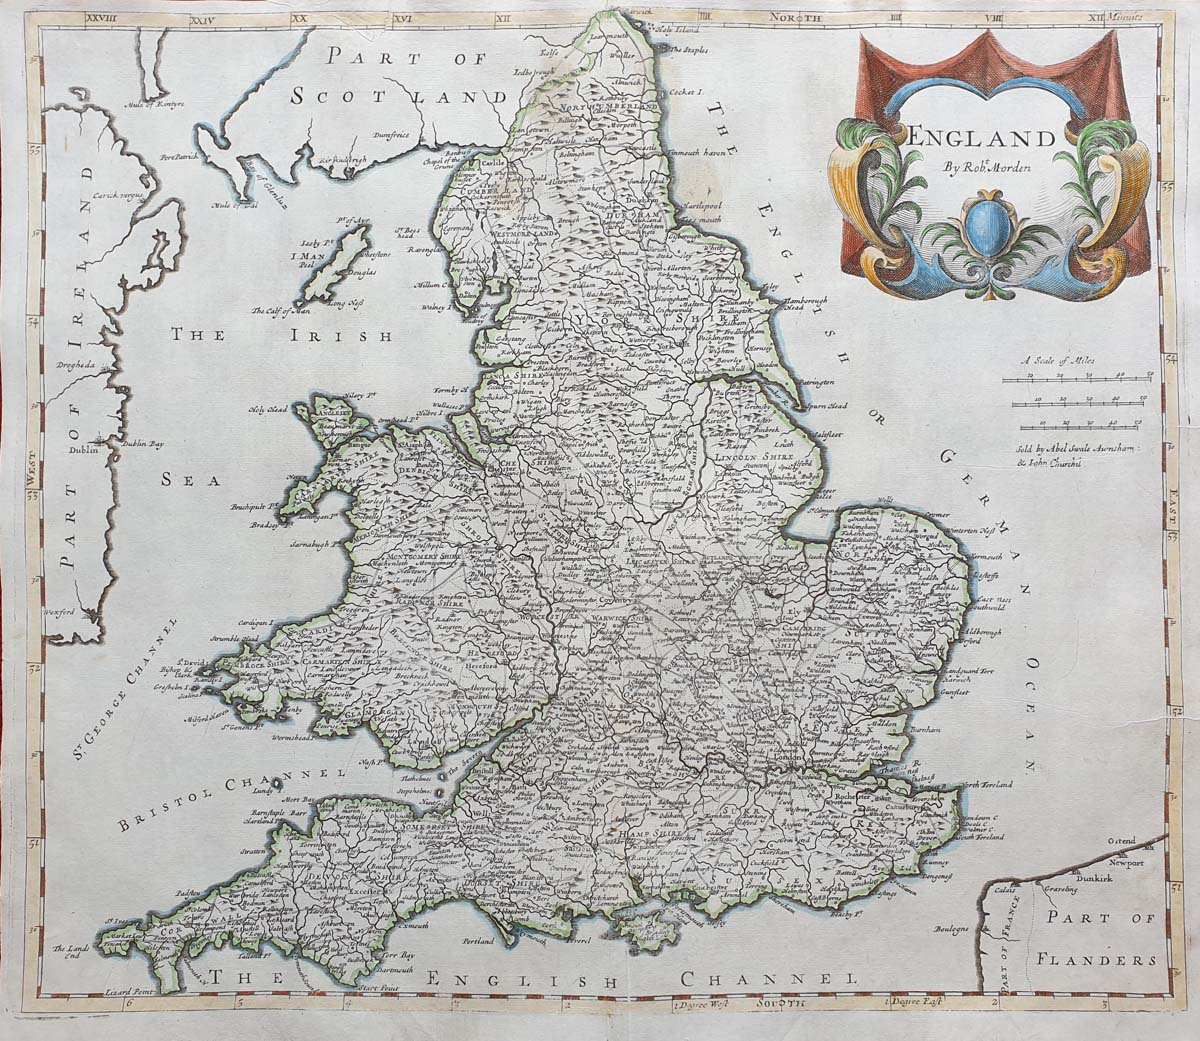 Antique map of England and Wales by Robert Morden